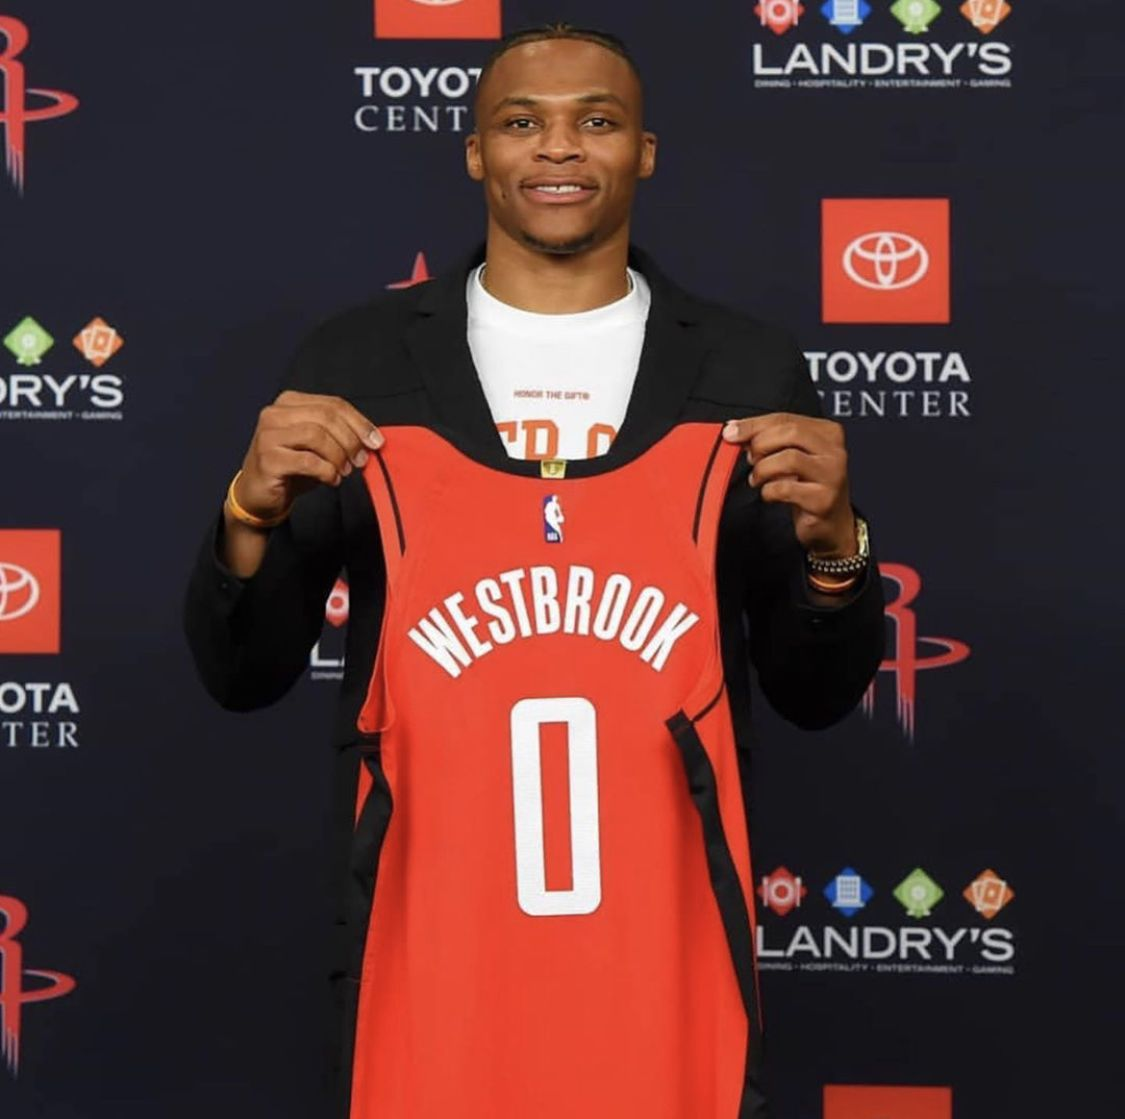 Pin By Www Peter Hooper Com On Russell Westbrook Houston Rockets Basketball Players Russell Westbrook